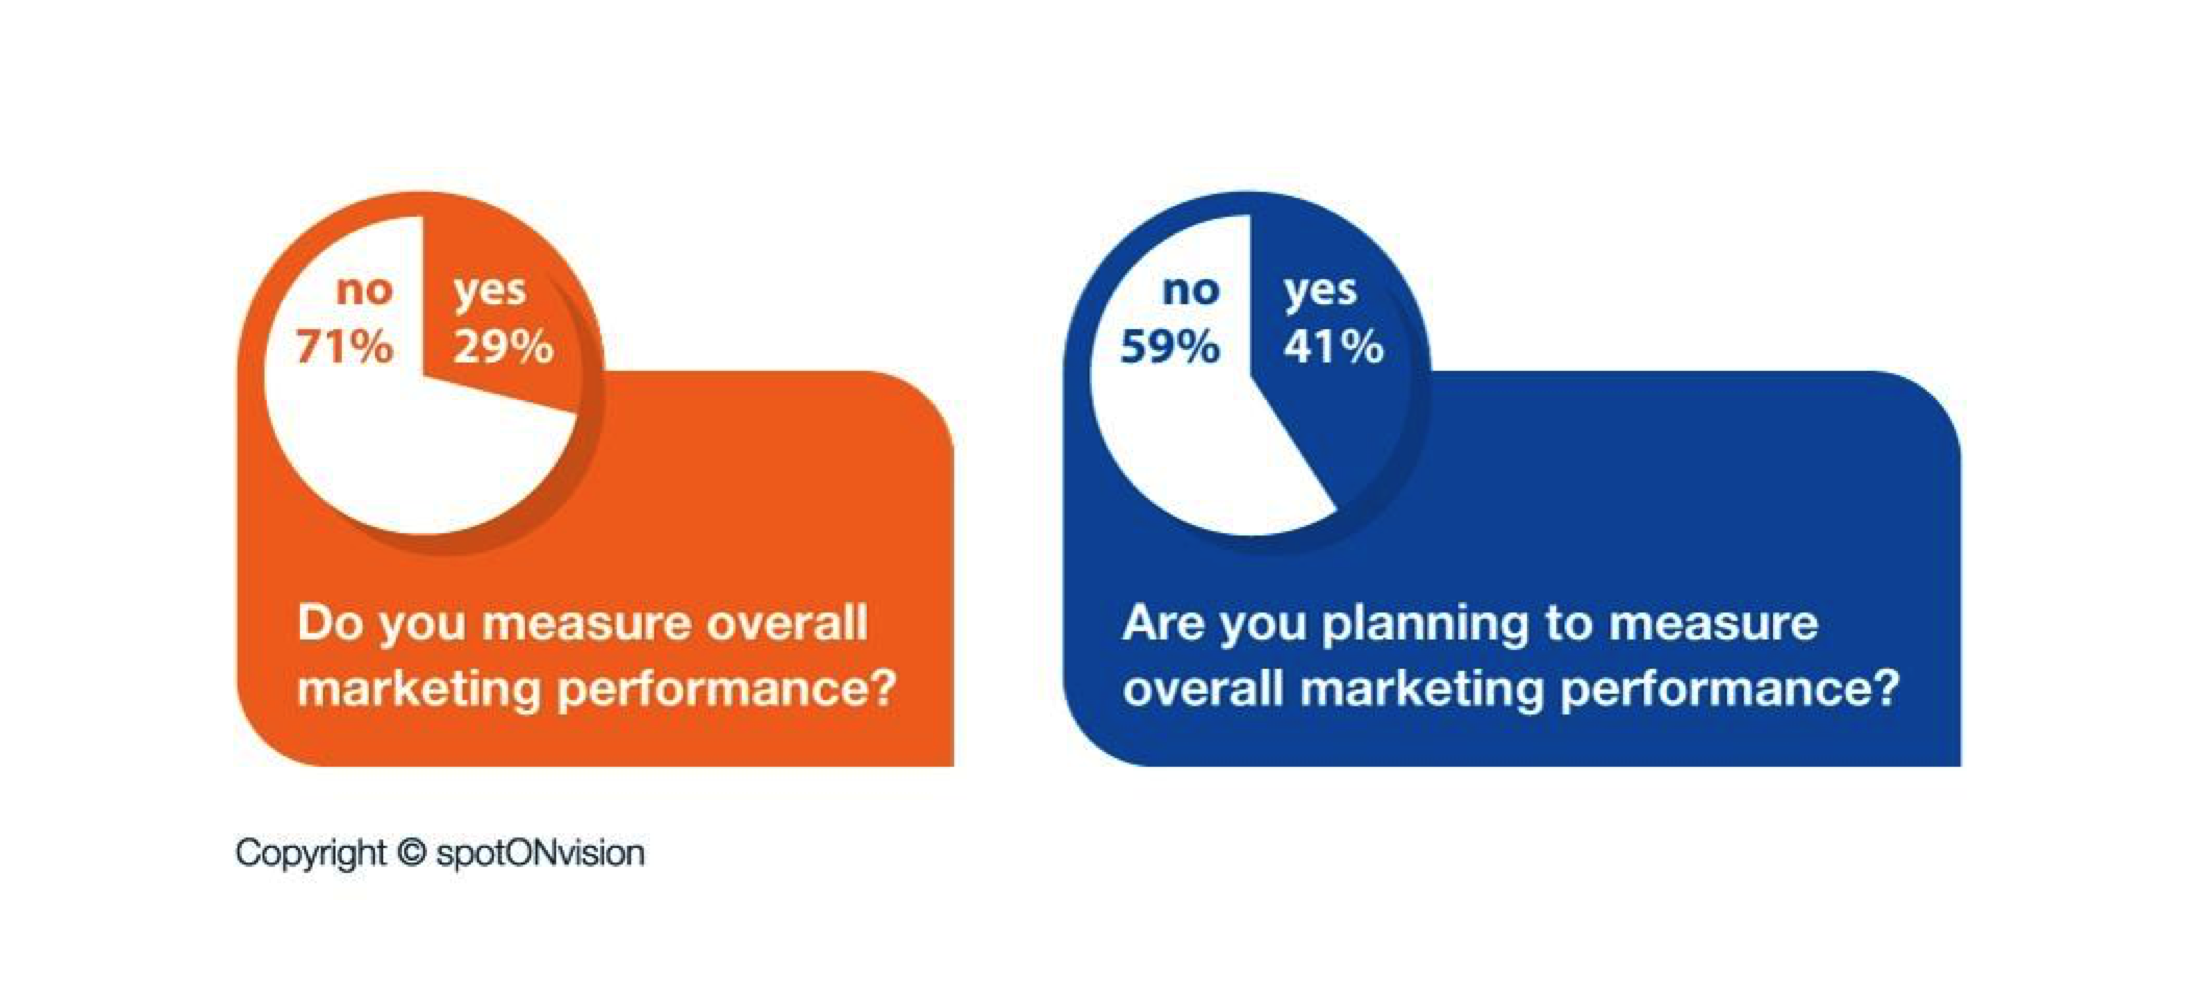 Marketing performance measures